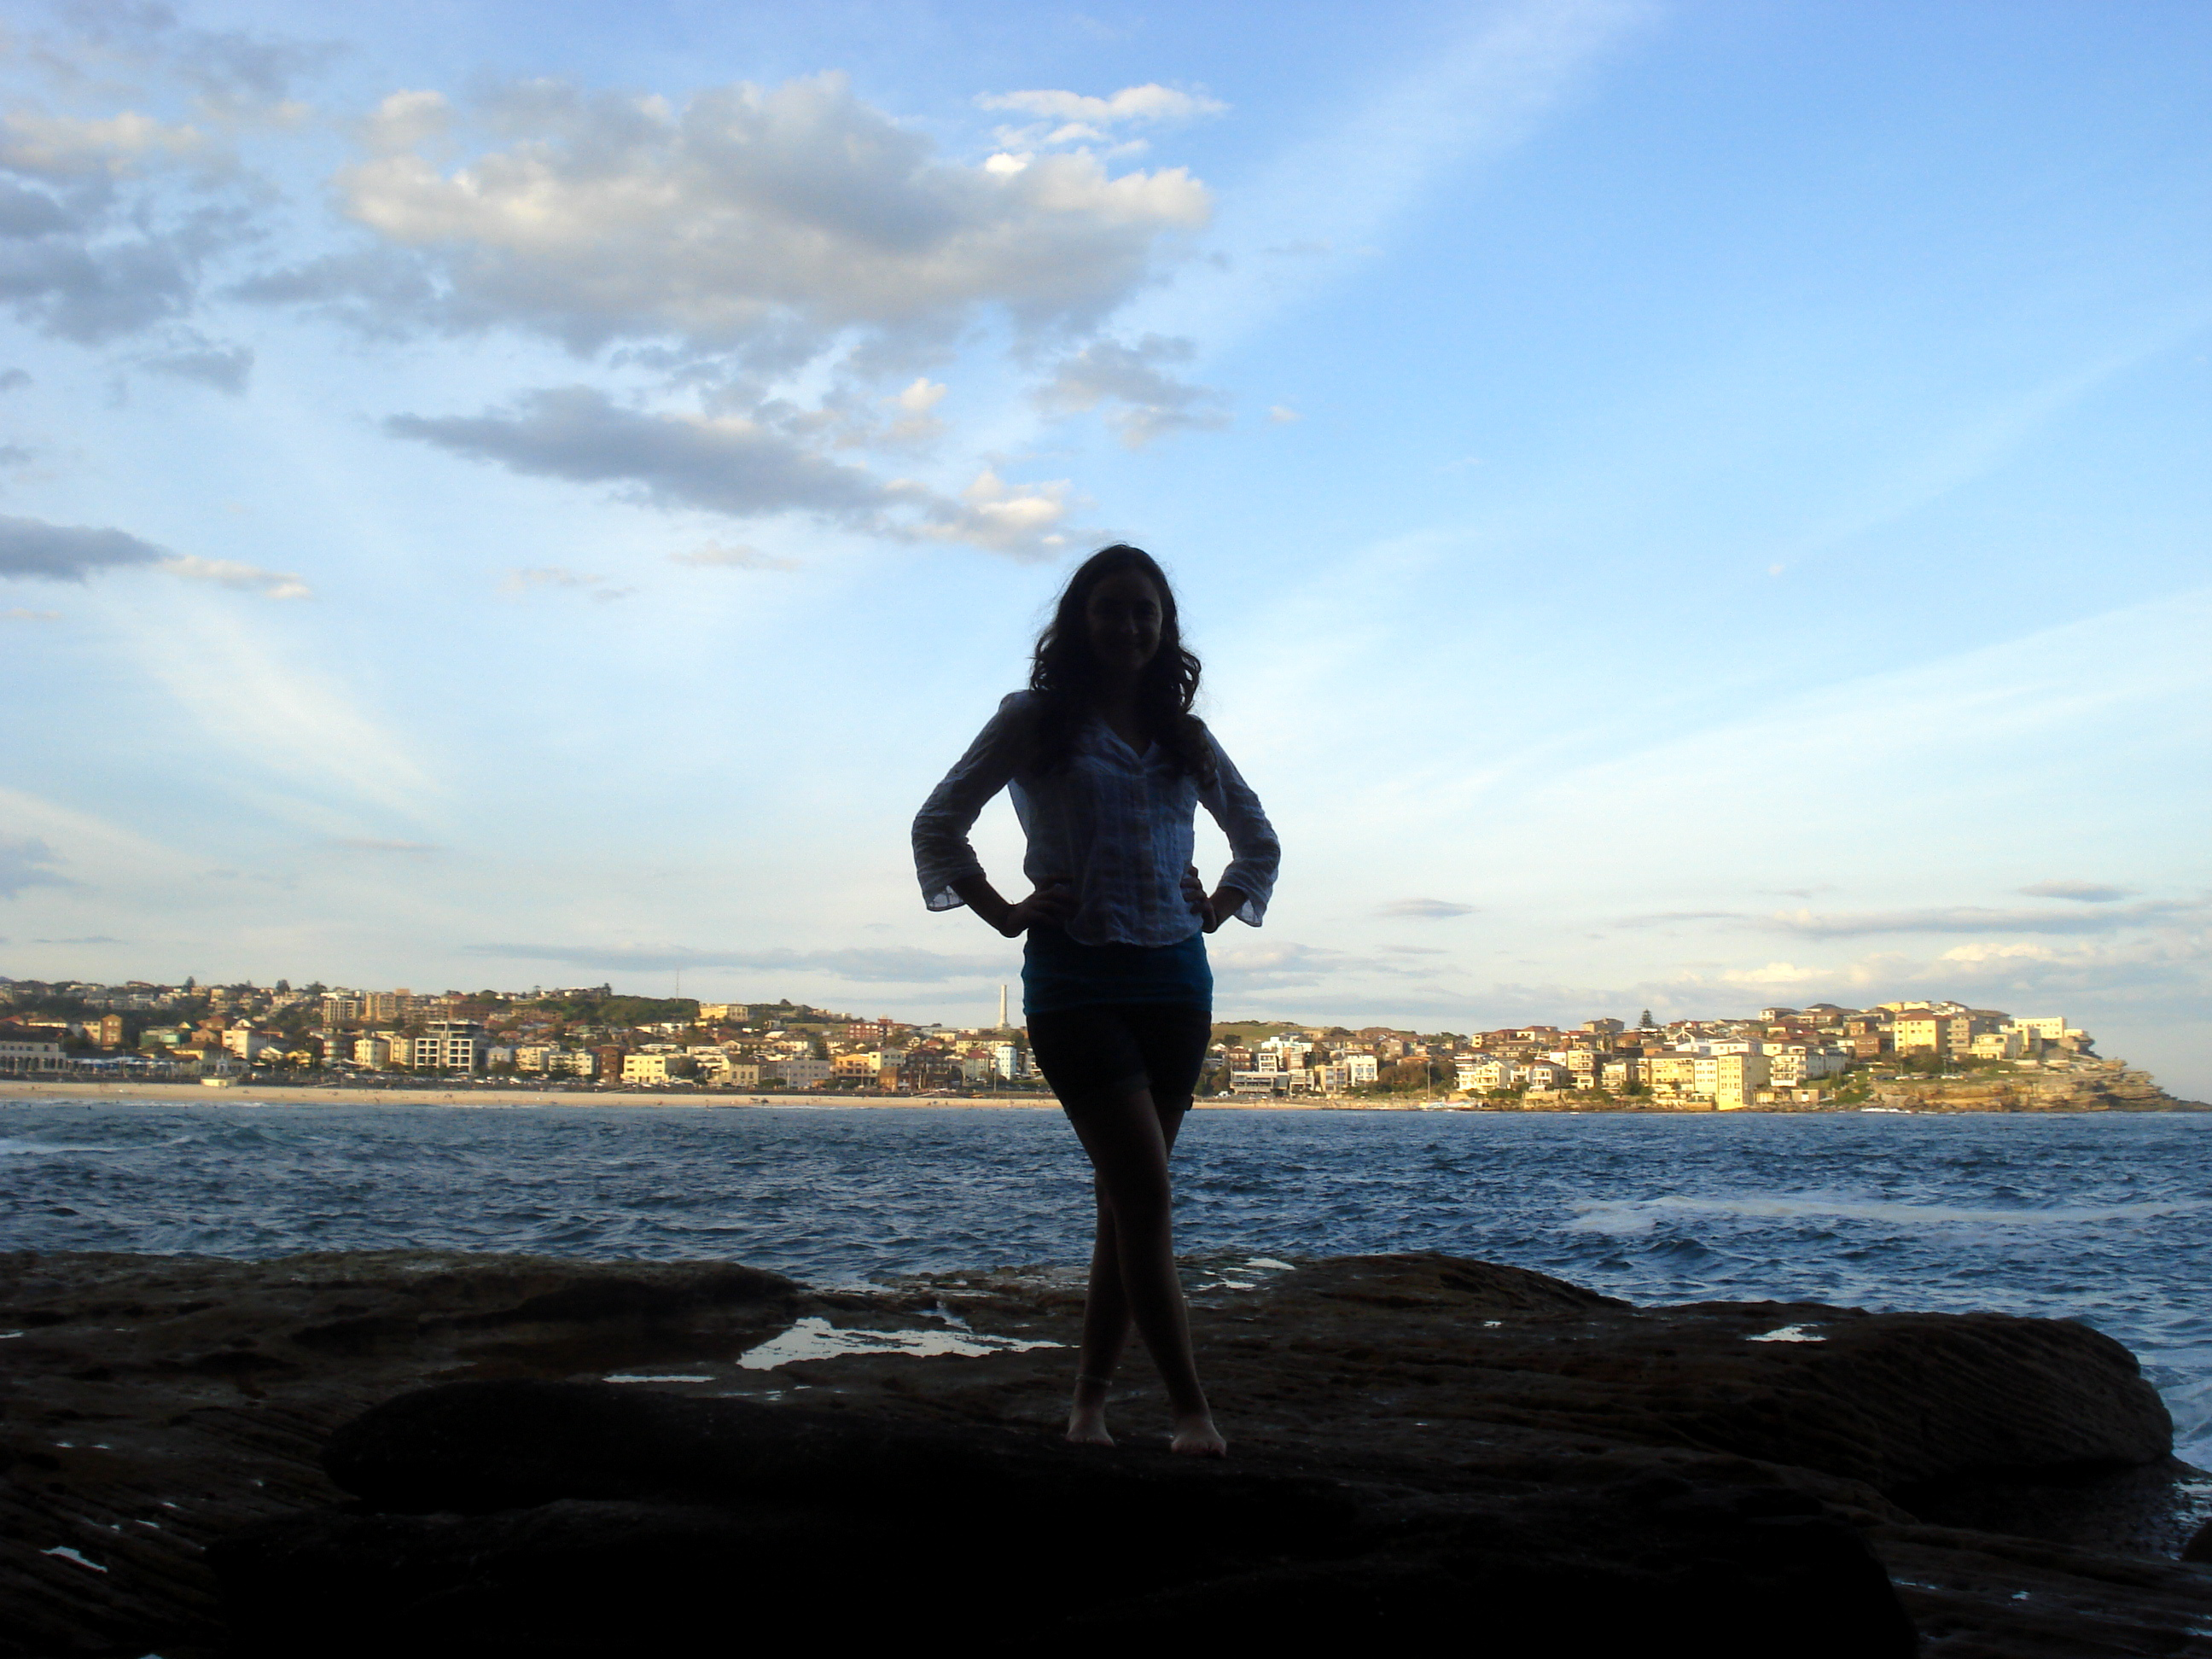 View of Bondi from cliffs